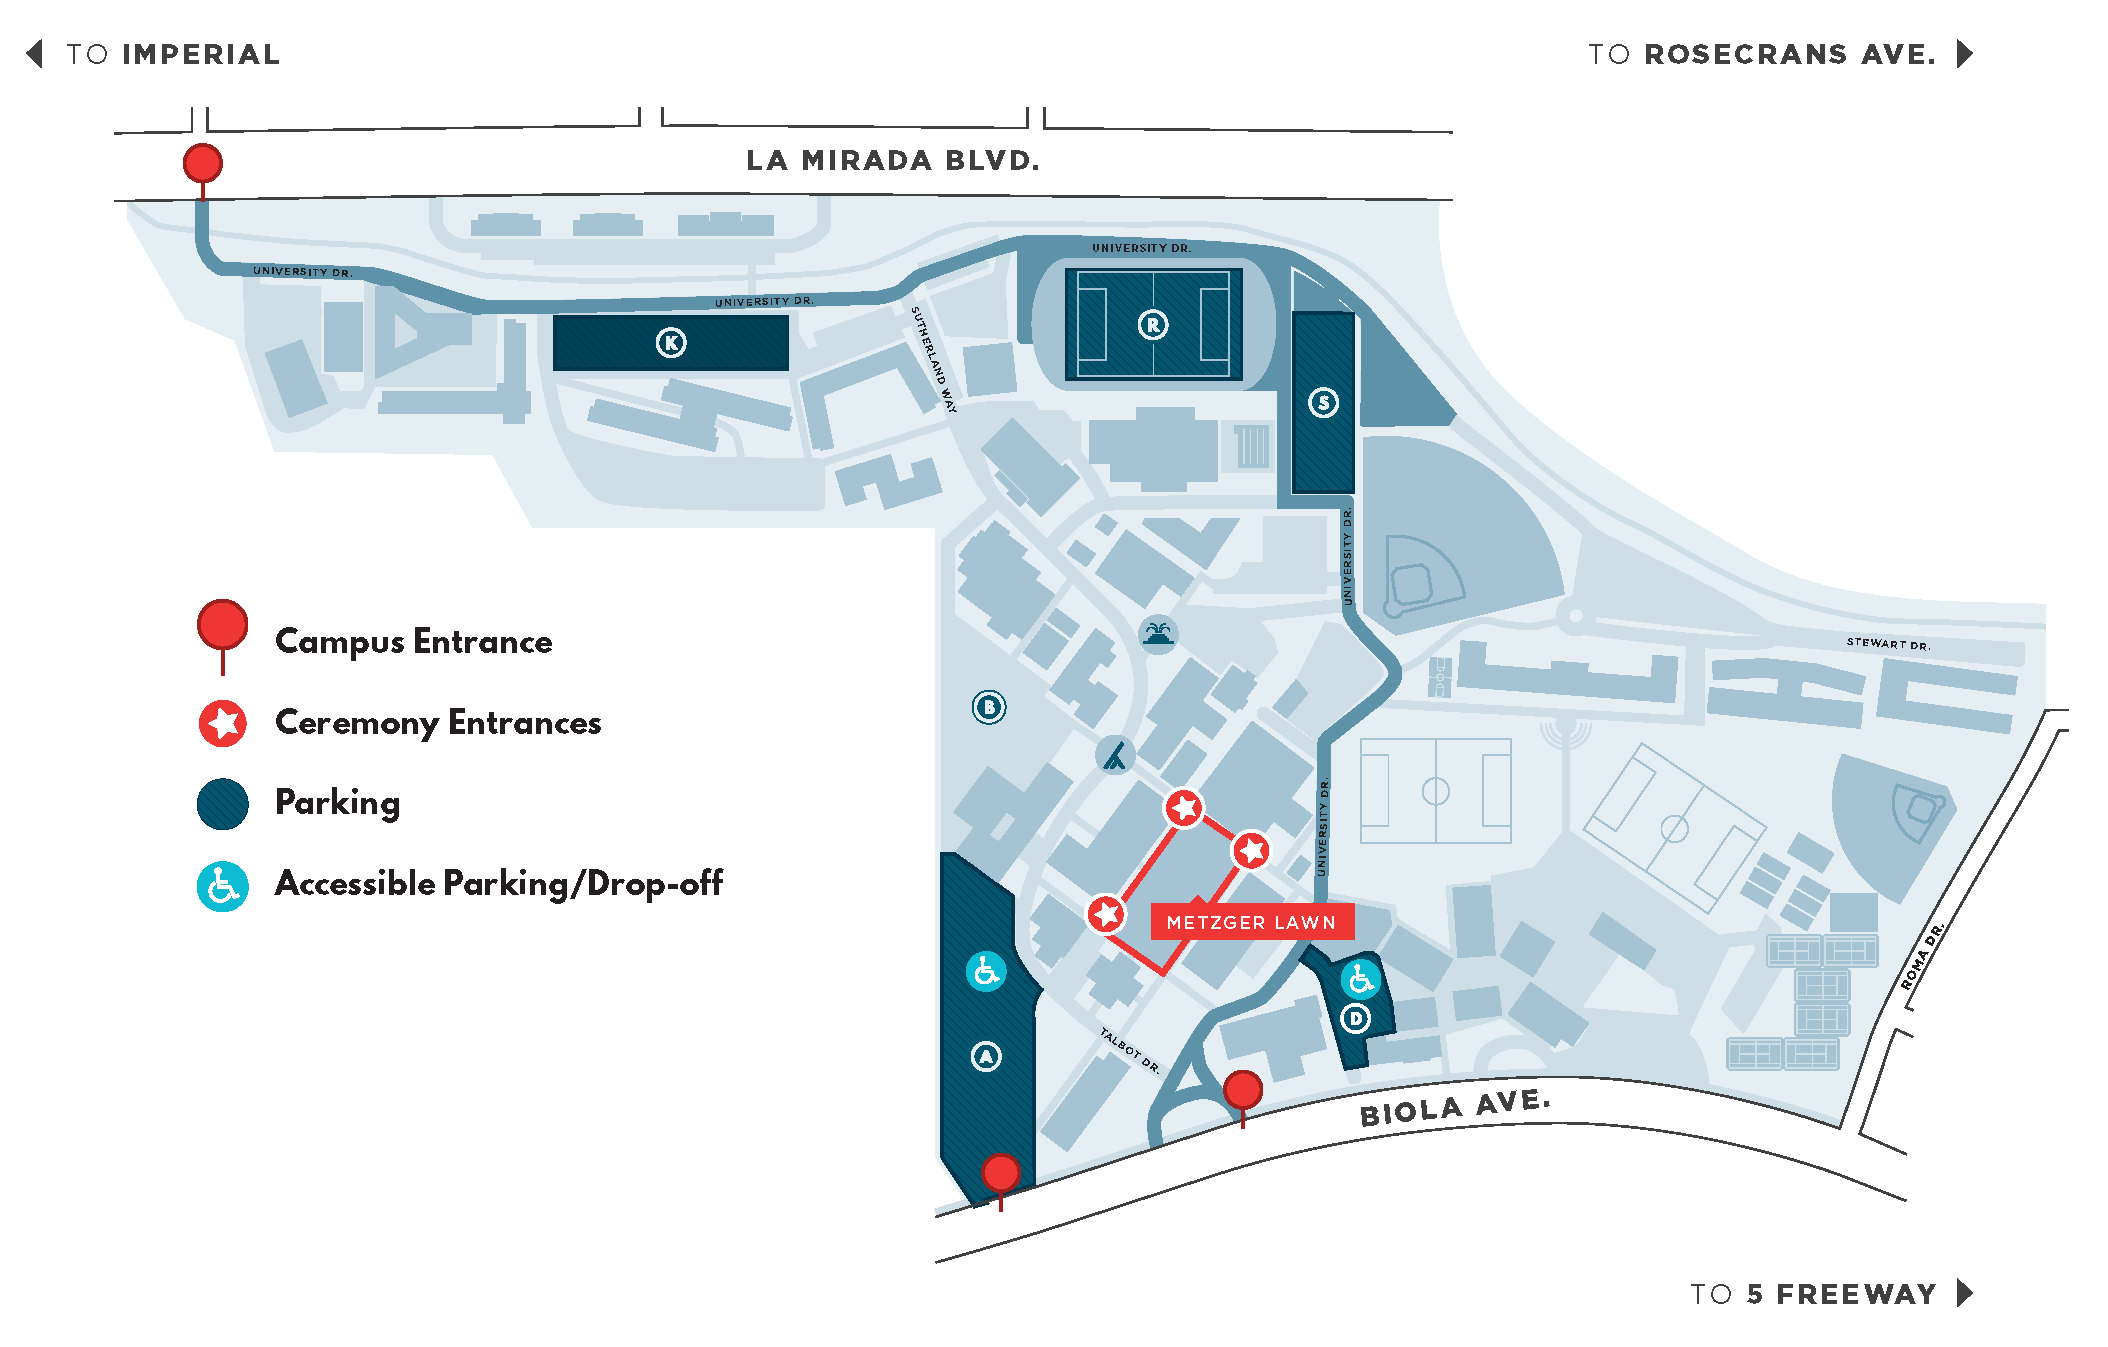 Spring Commencement Map showing campus entrances, ceremony entrances, parking locations and accessible parking and drop off locations